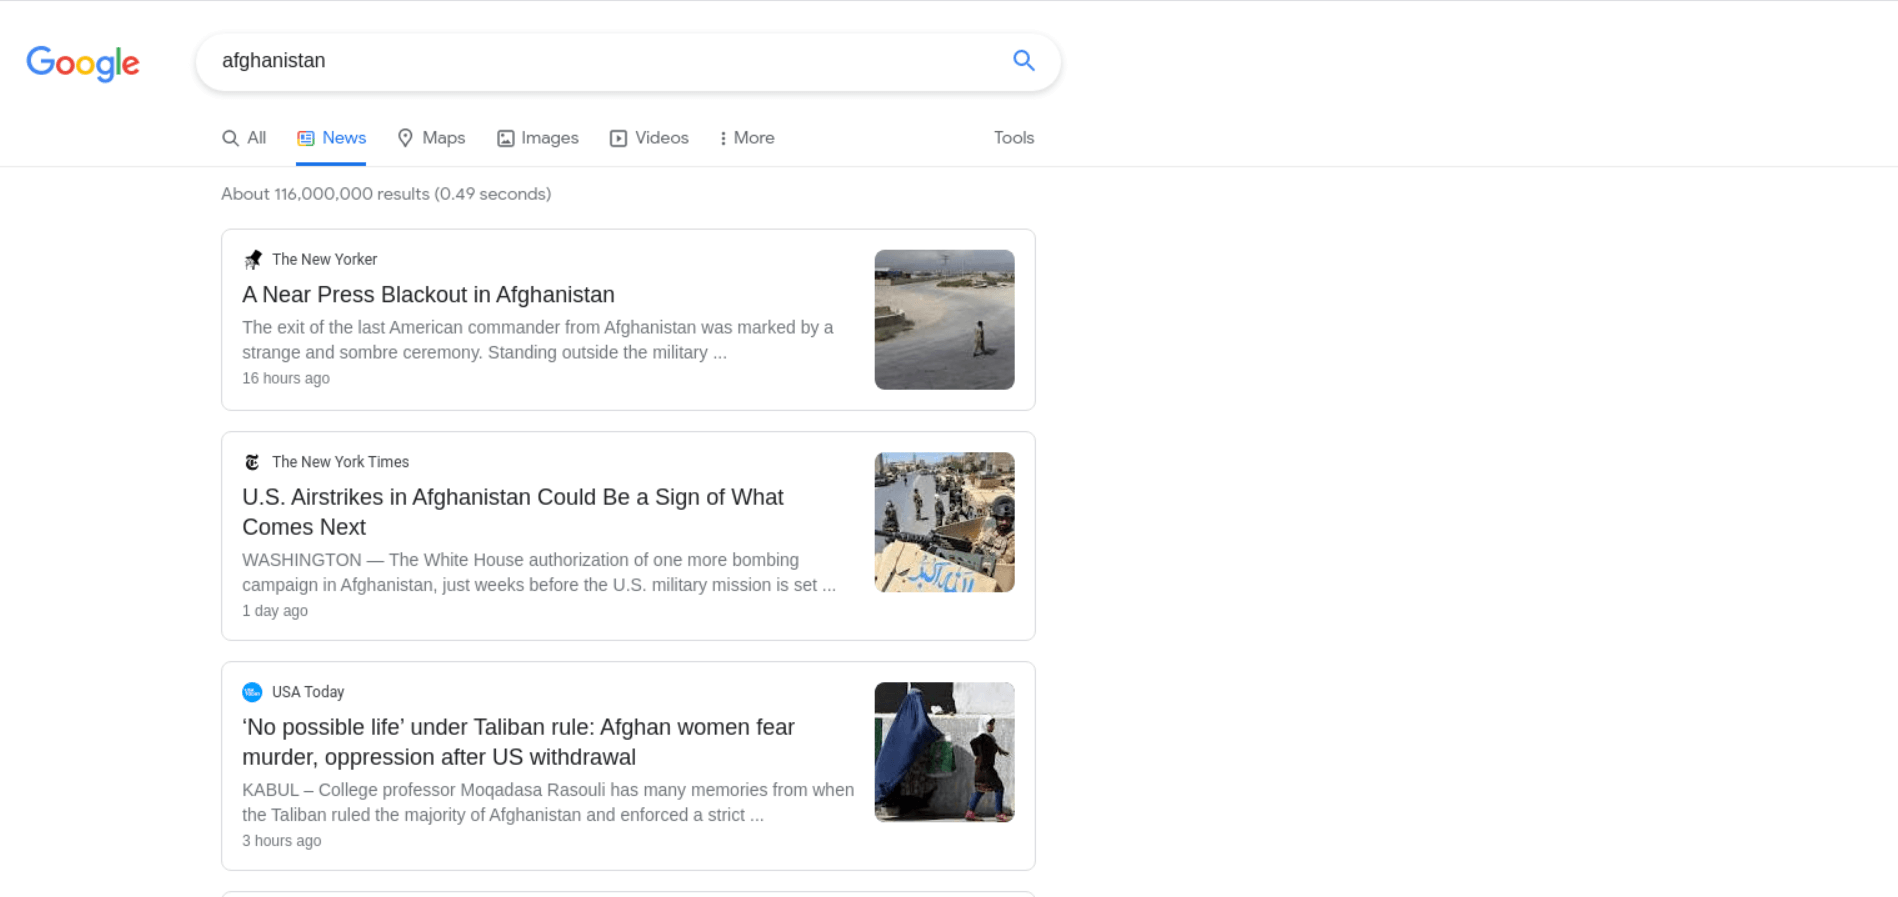 News Results example